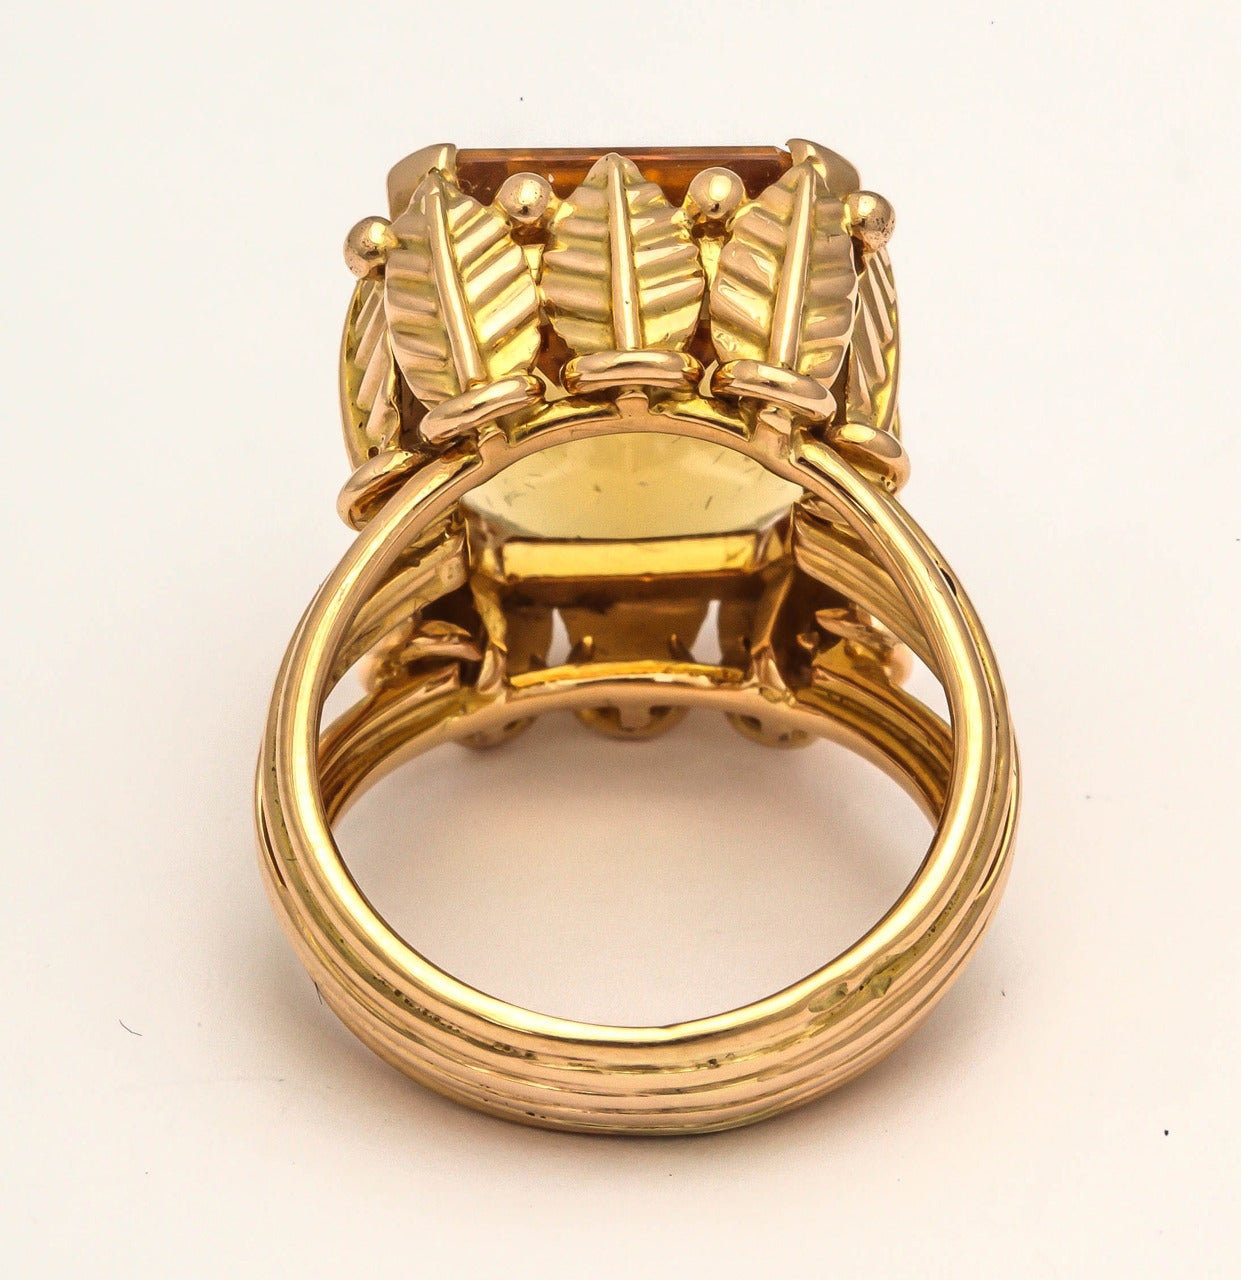 Elegant 1970s French citrine statement ring, the 18k gold mount designed as a row of wheat sheaves, ancient symbol of prosperity, set with a rectangular-cut citrine with canted corners.  Paris, France, hallmarked.  Size 6